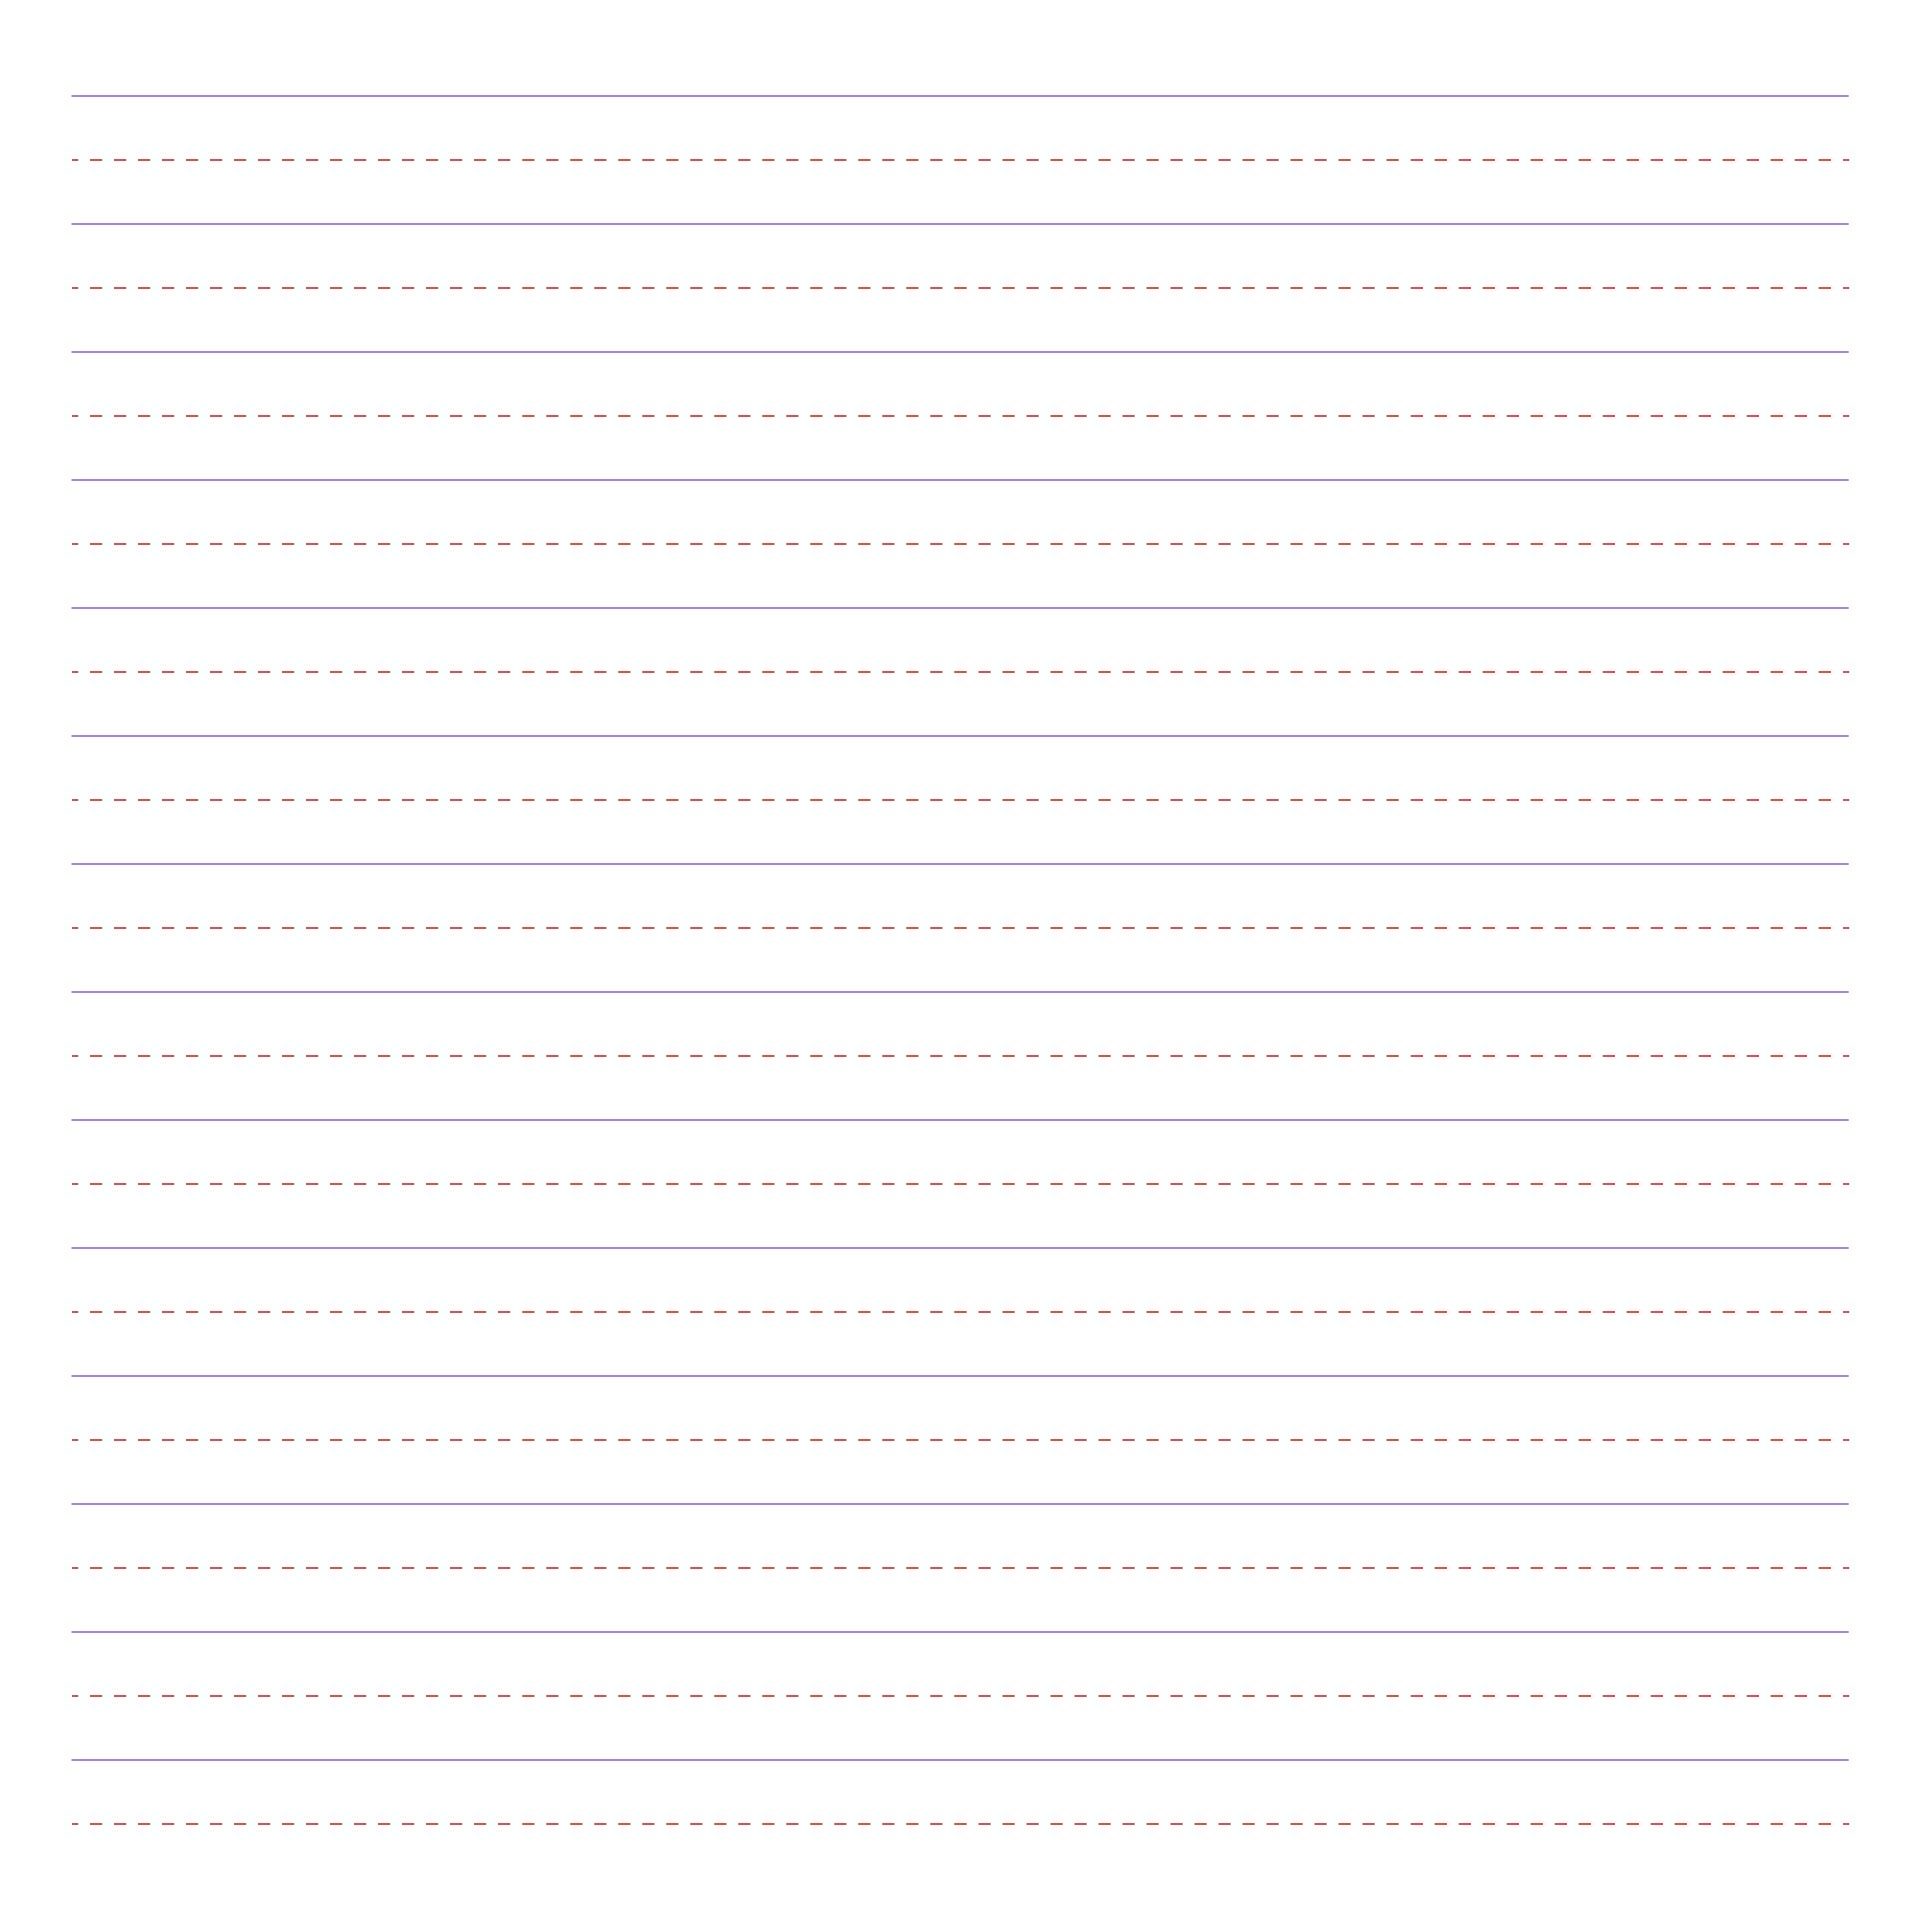 2nd Grade Printable Lined Paper